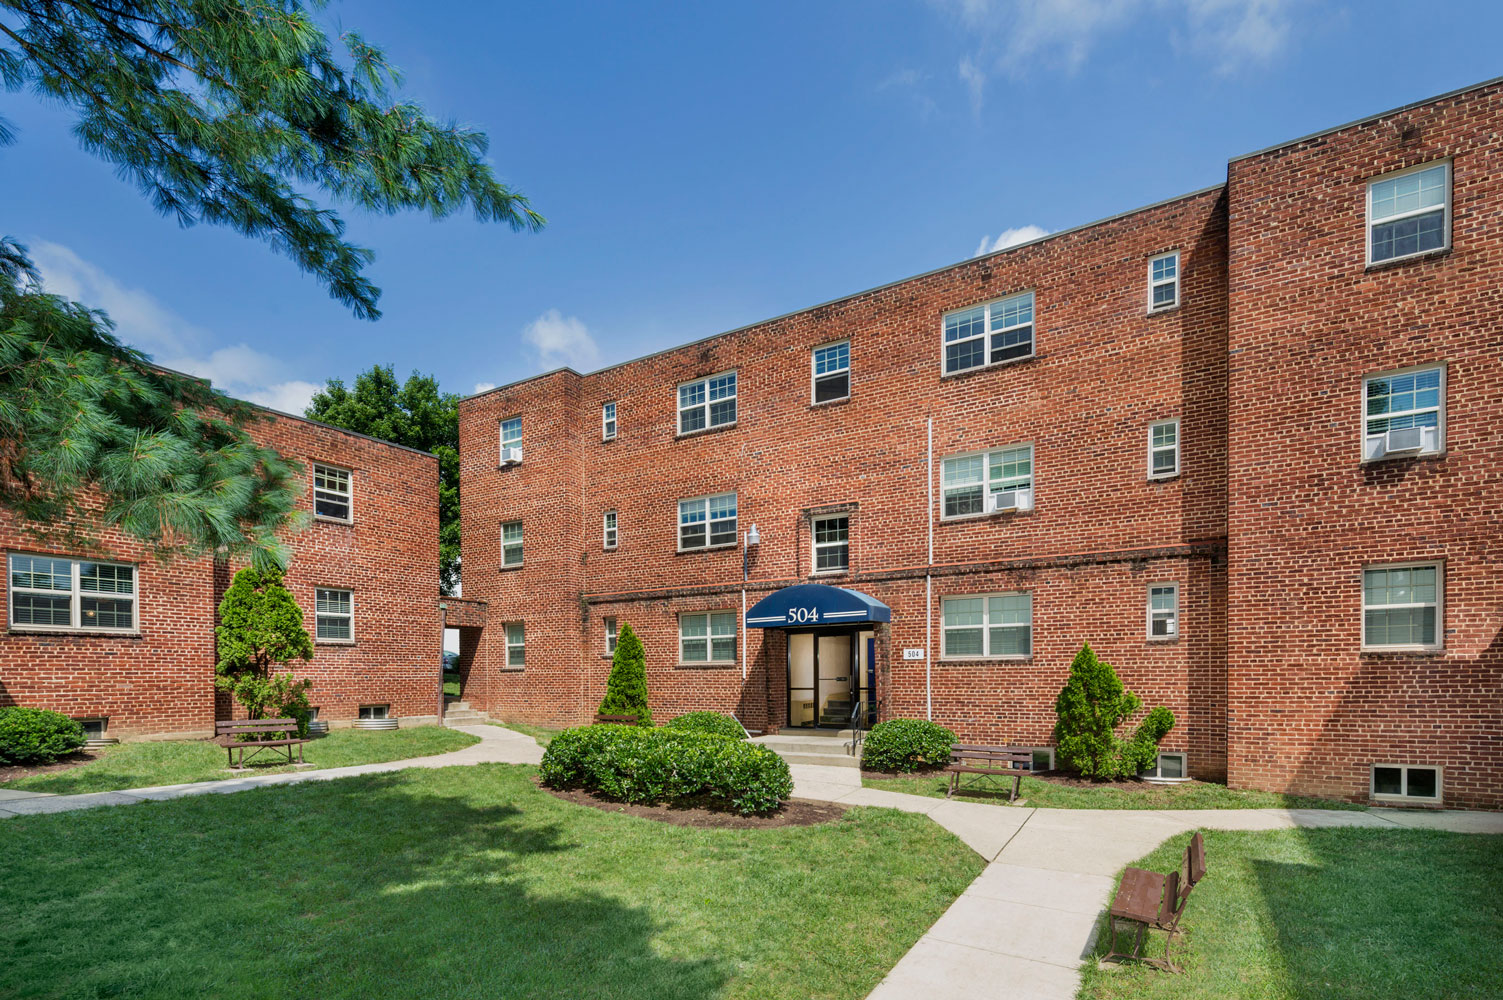 1 and 2-bedroom apartments at Goodacre & Pine Ridge Apartments in Silver Spring, MD